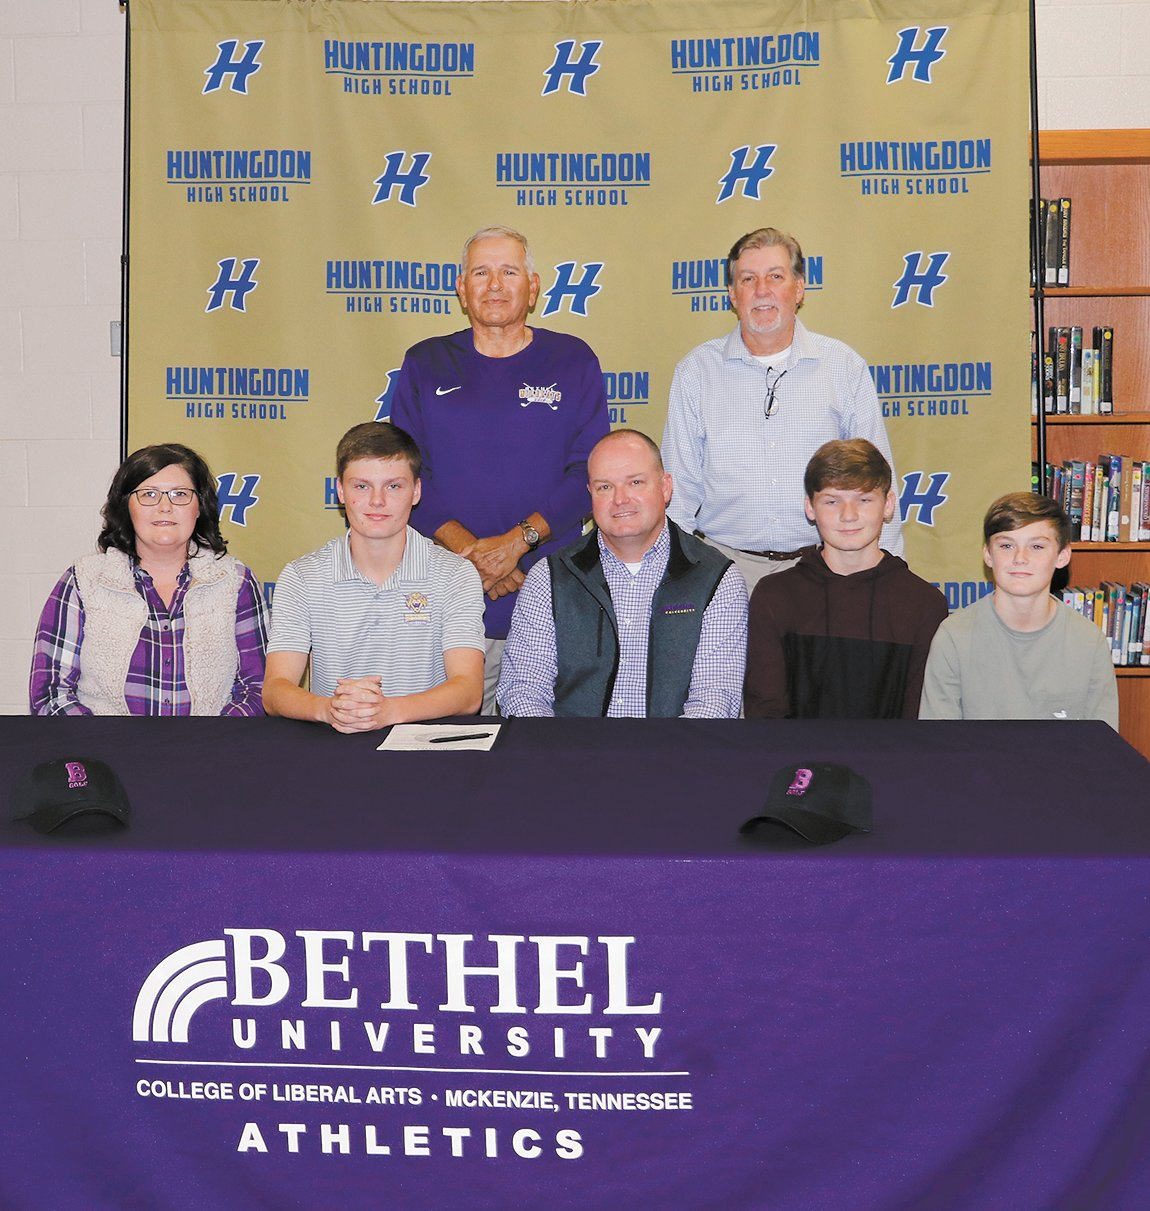 Rickets signs with Bethel: (L – R) Tonya, Ethan, Bud, Nath and Seth Rickets, (back) Bethel Coach Larry Geraldi and Huntingdon Coach Mike Henson.